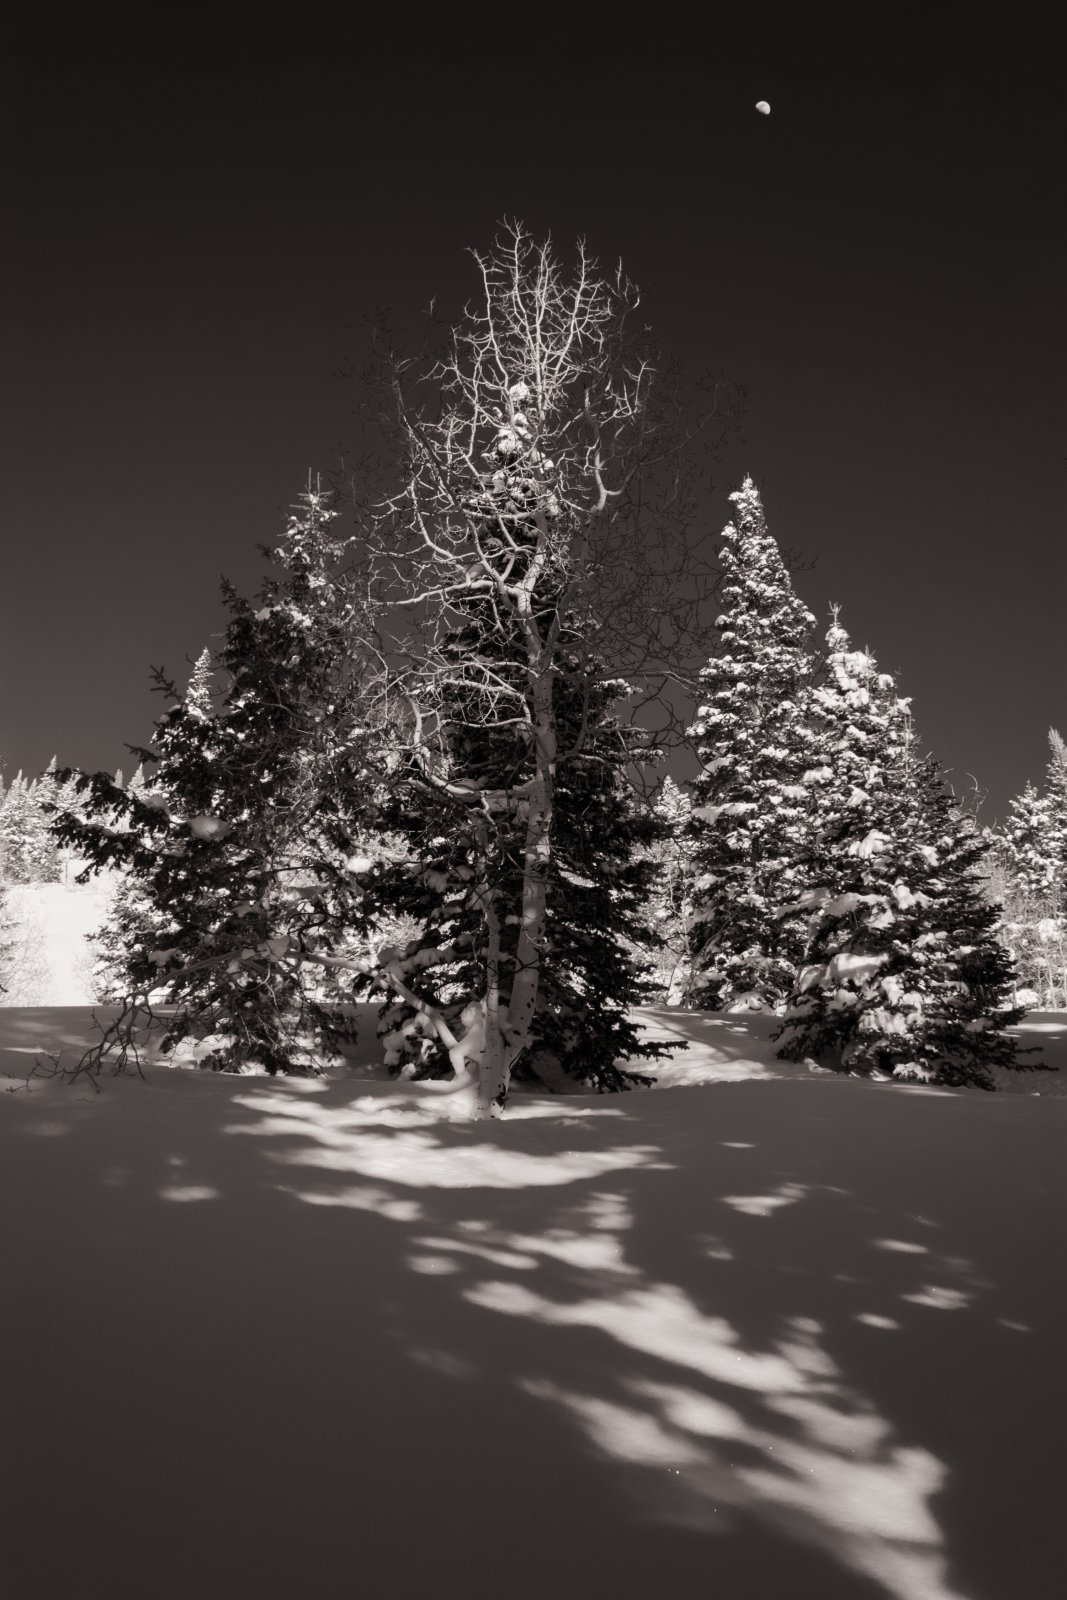 Snowshoeing With Ade0197-sm-bw.jpg